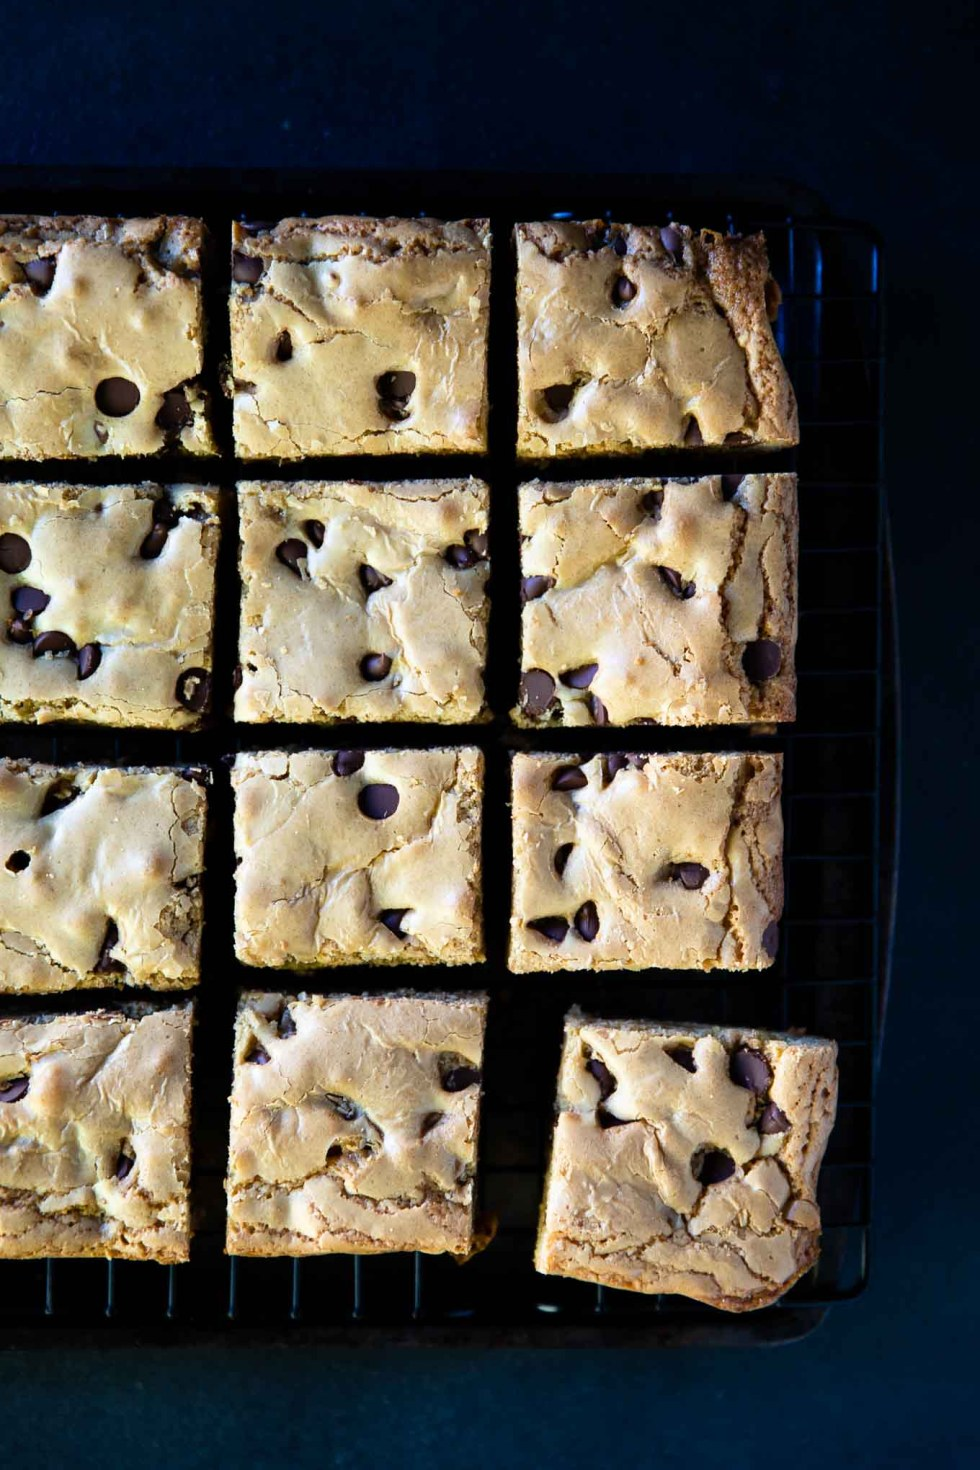 Caramel blondies cooling on a wire rack